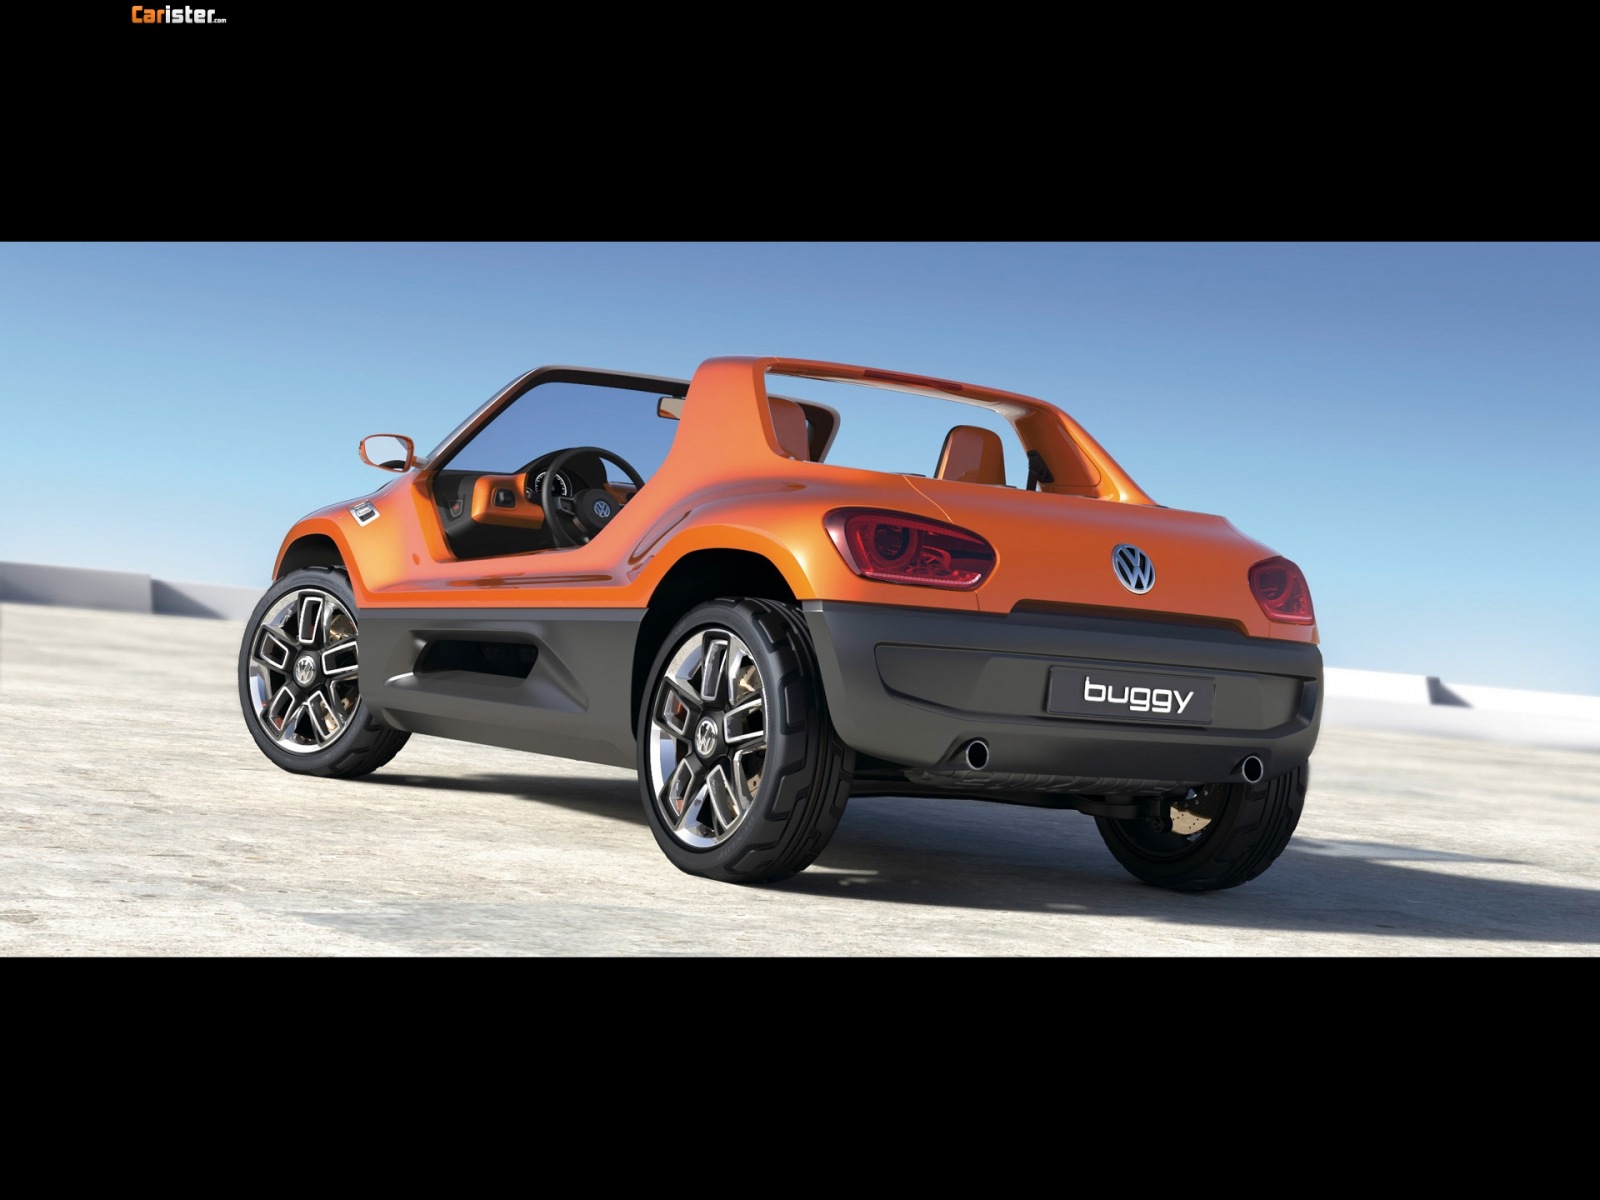 Volkswagen Buggy Up Concept 2011 - Photo 07 - Taille: 1600x1200